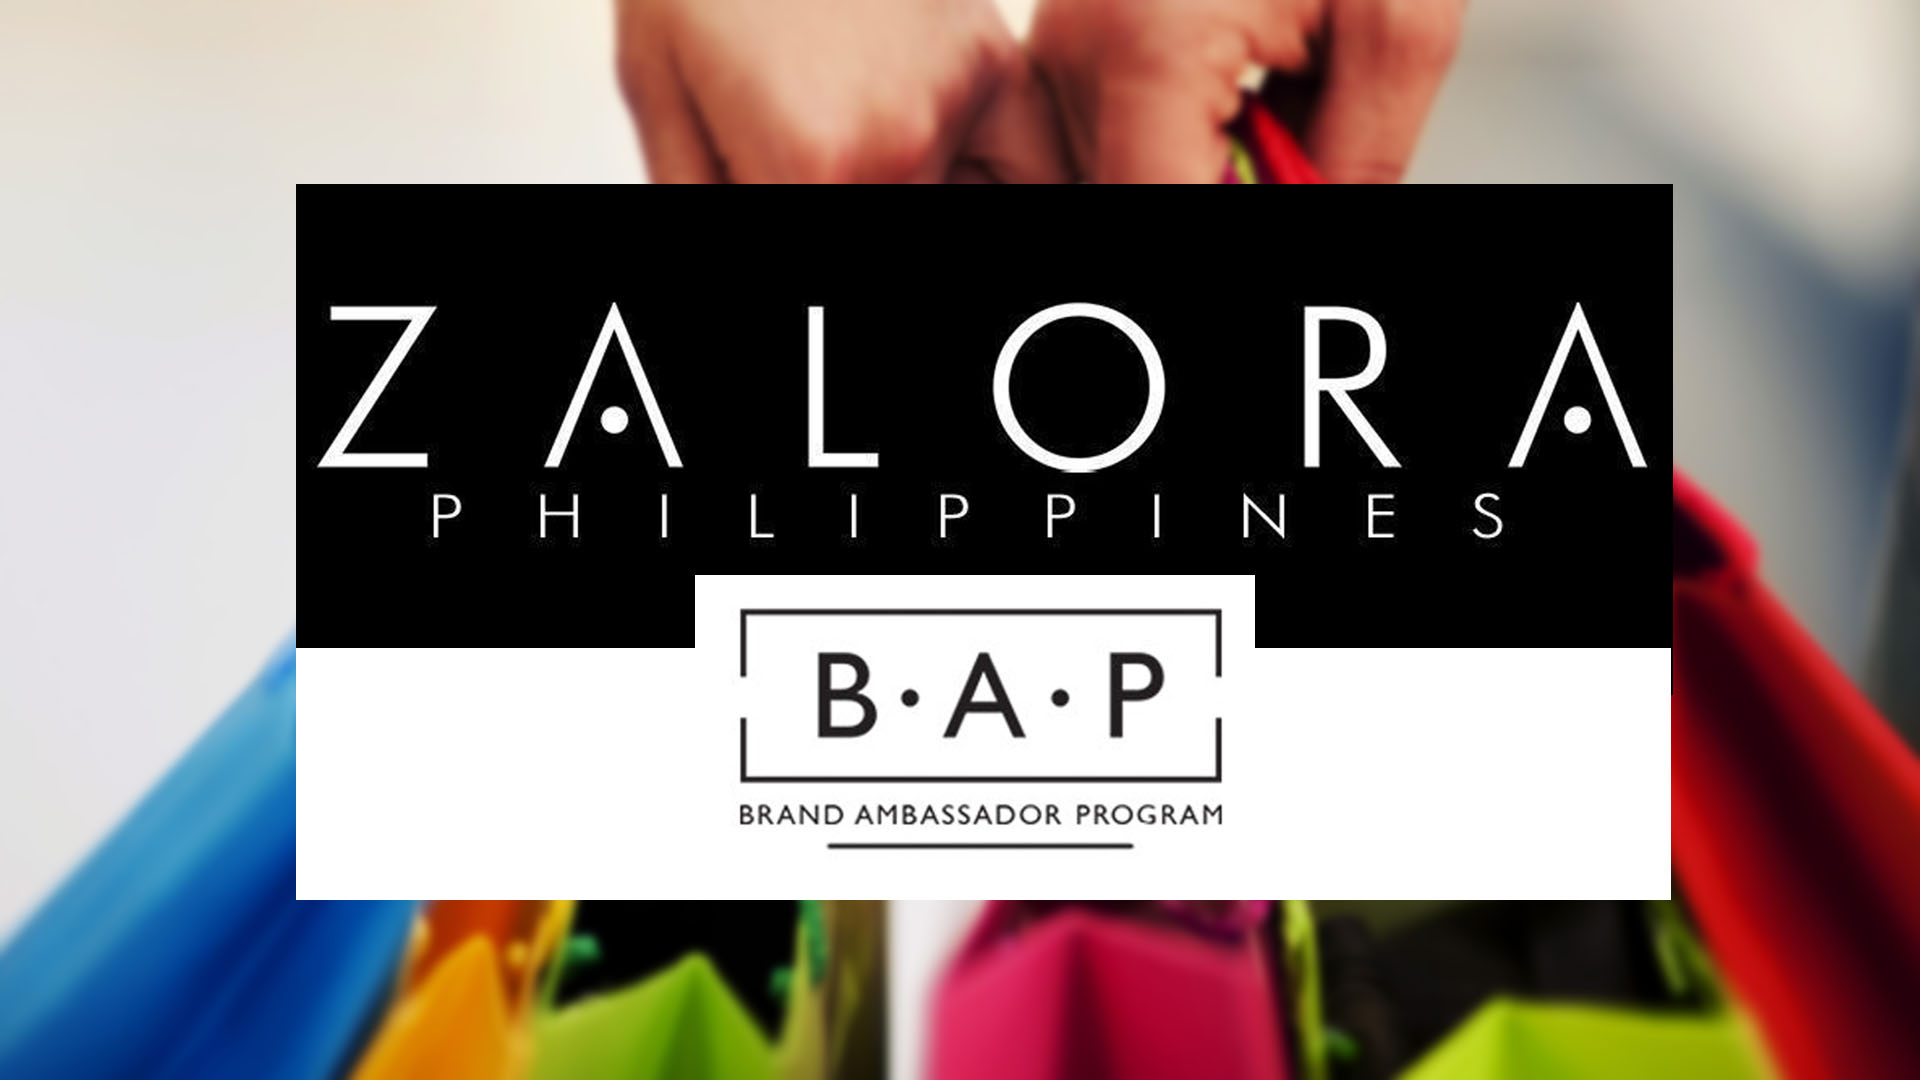 Zalora Brand Ambassador Program: 15% Off Voucher Code